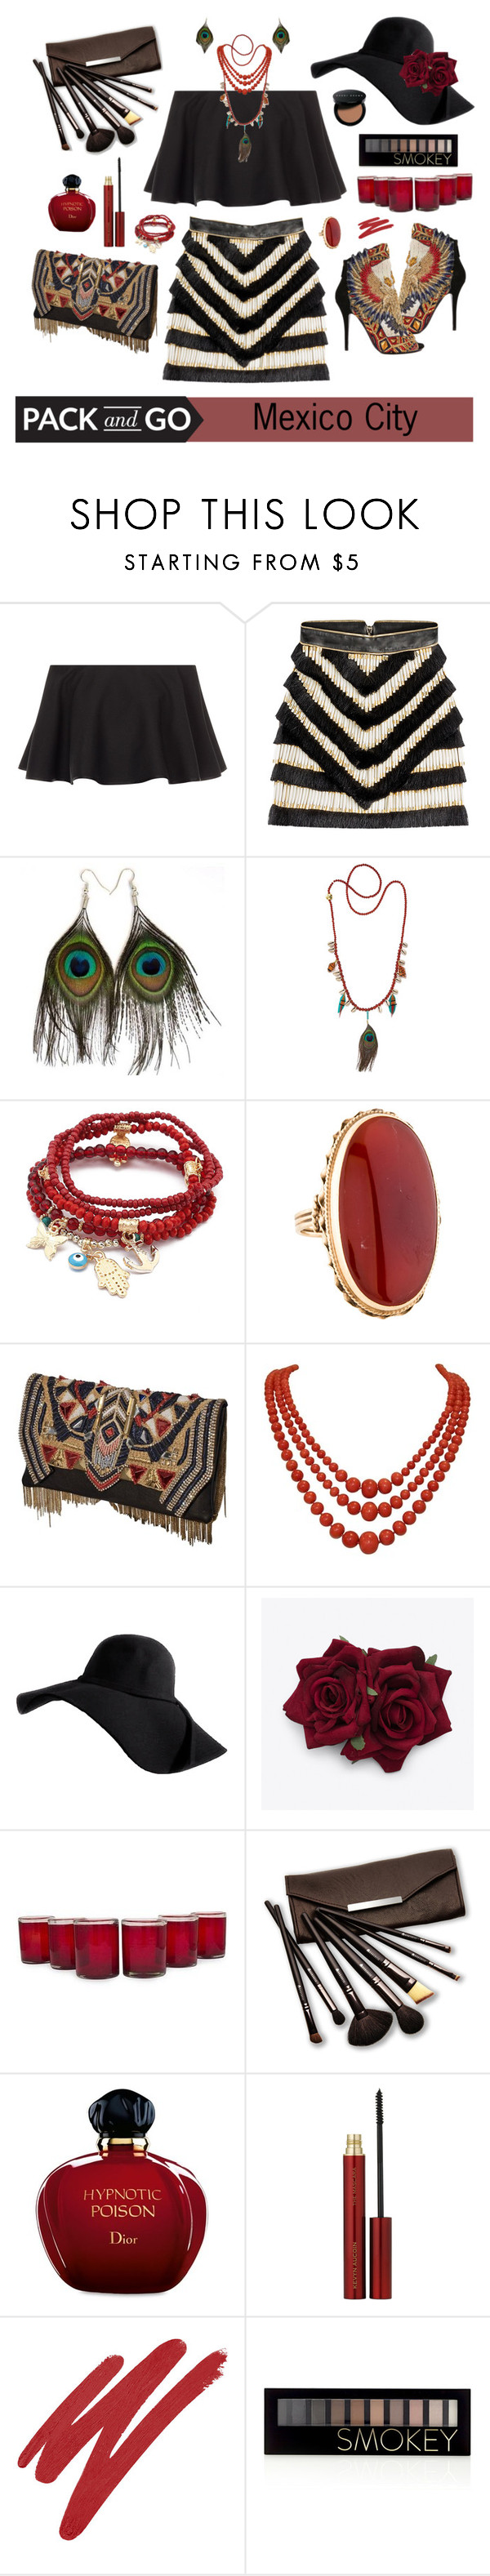 """Mexico City - 210416"" by vixen-vixen ❤ liked on Polyvore featuring Rosetta Getty, Balmain, Hipanema, Chicnova Fashion, NOVICA, Borghese, Christian Dior, Kevyn Aucoin, NARS Cosmetics and Forever 21"